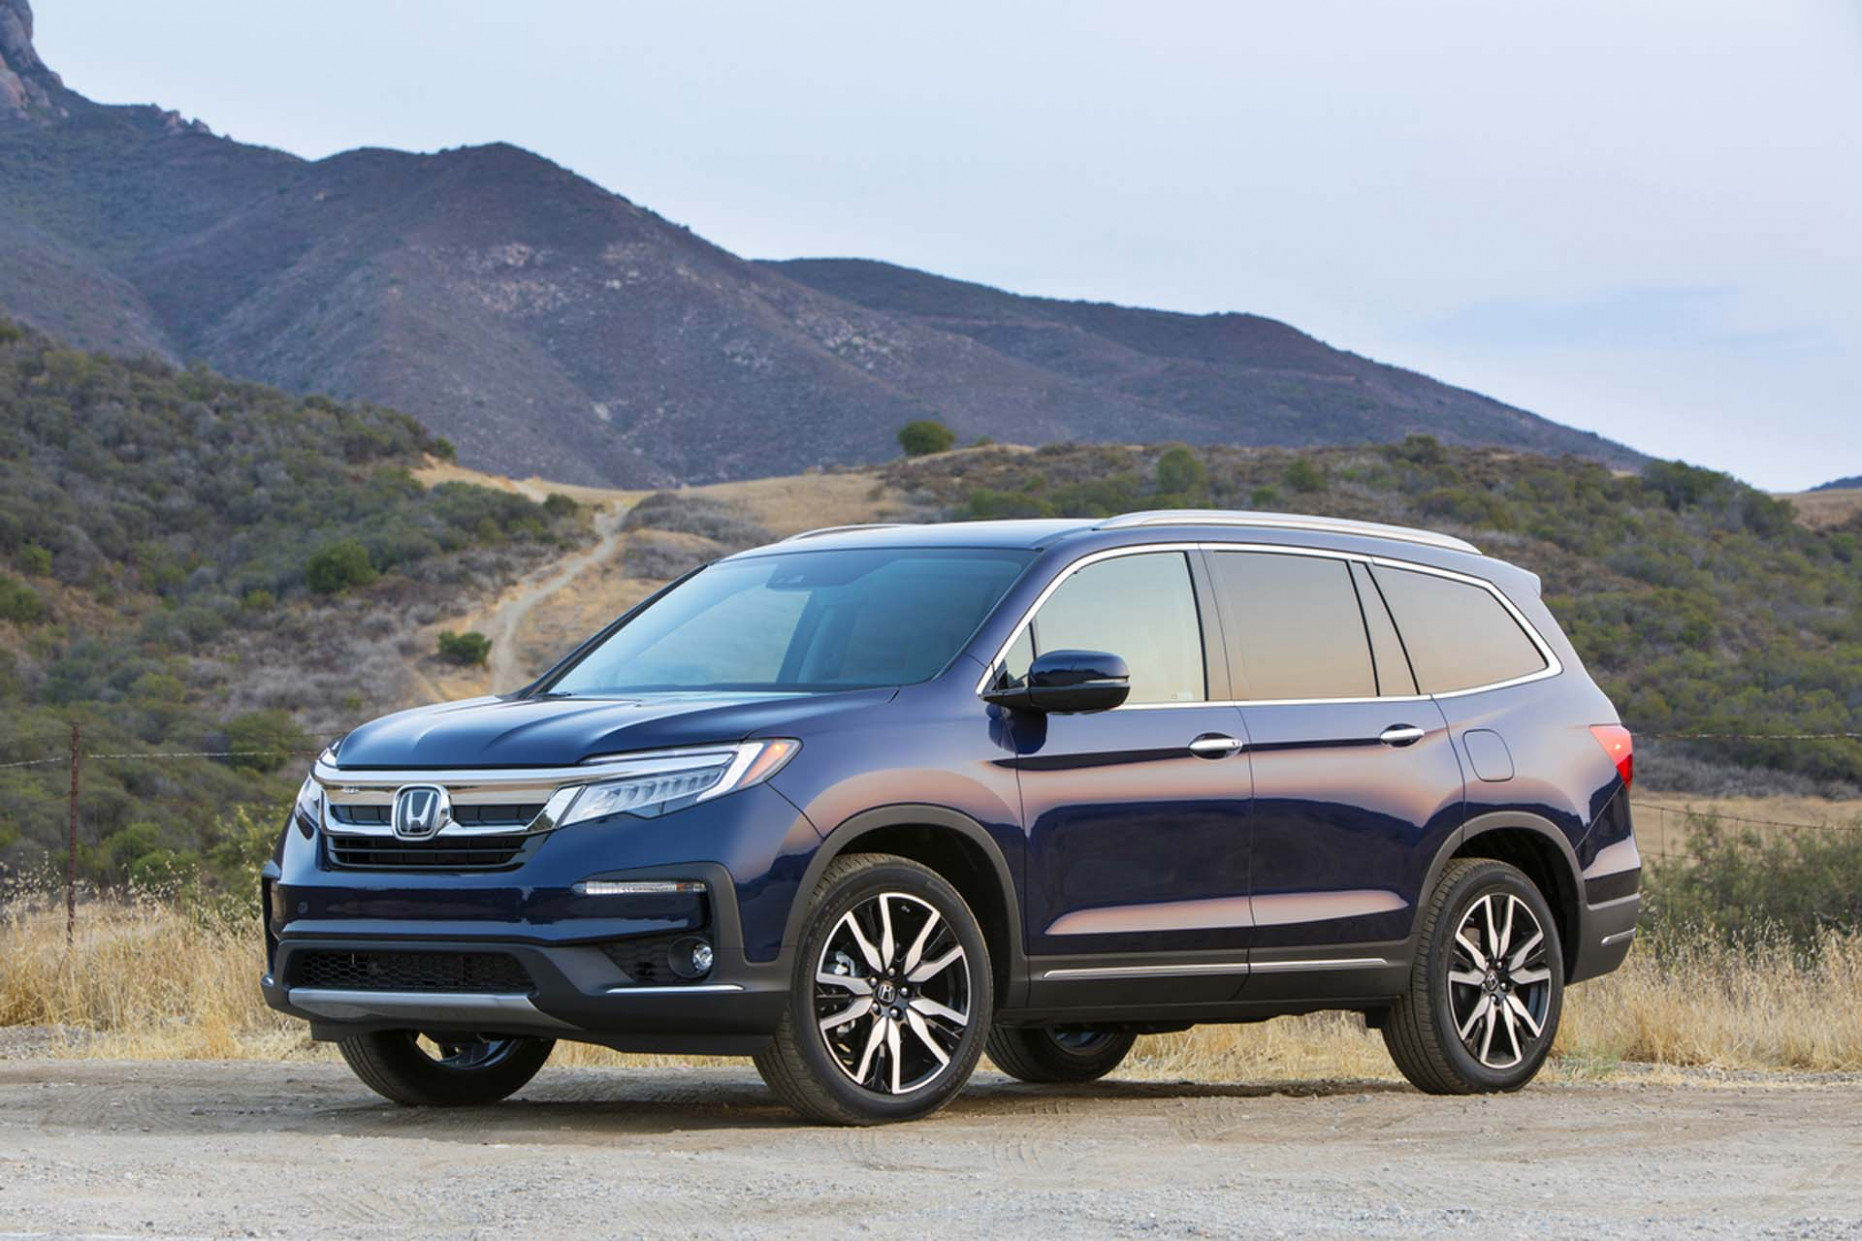 8 Honda Pilot Review, Ratings, Specs, Prices, and Photos - The ..